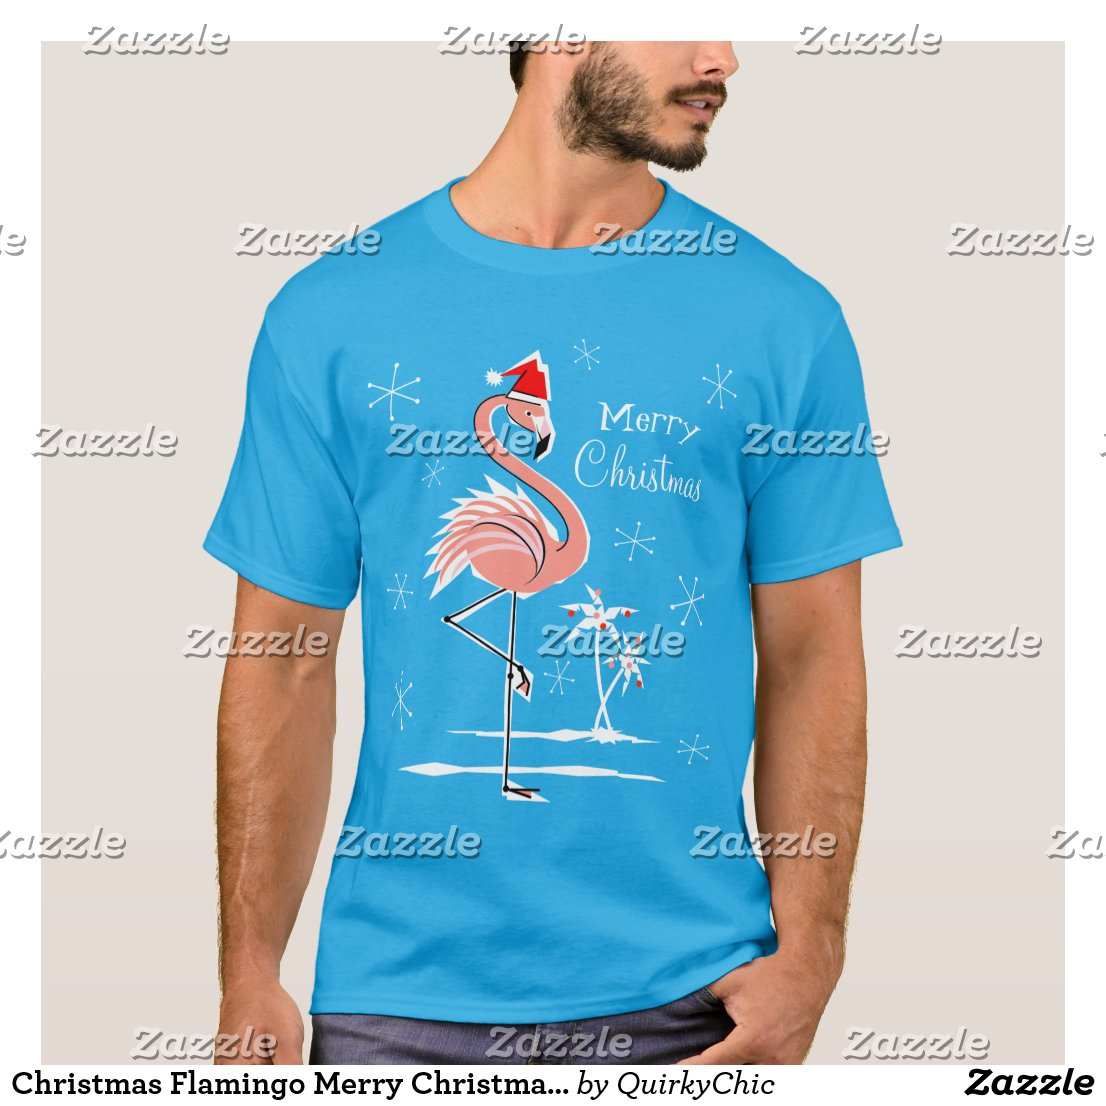 Christmas Flamingo Merry Christmas t-shirt men's